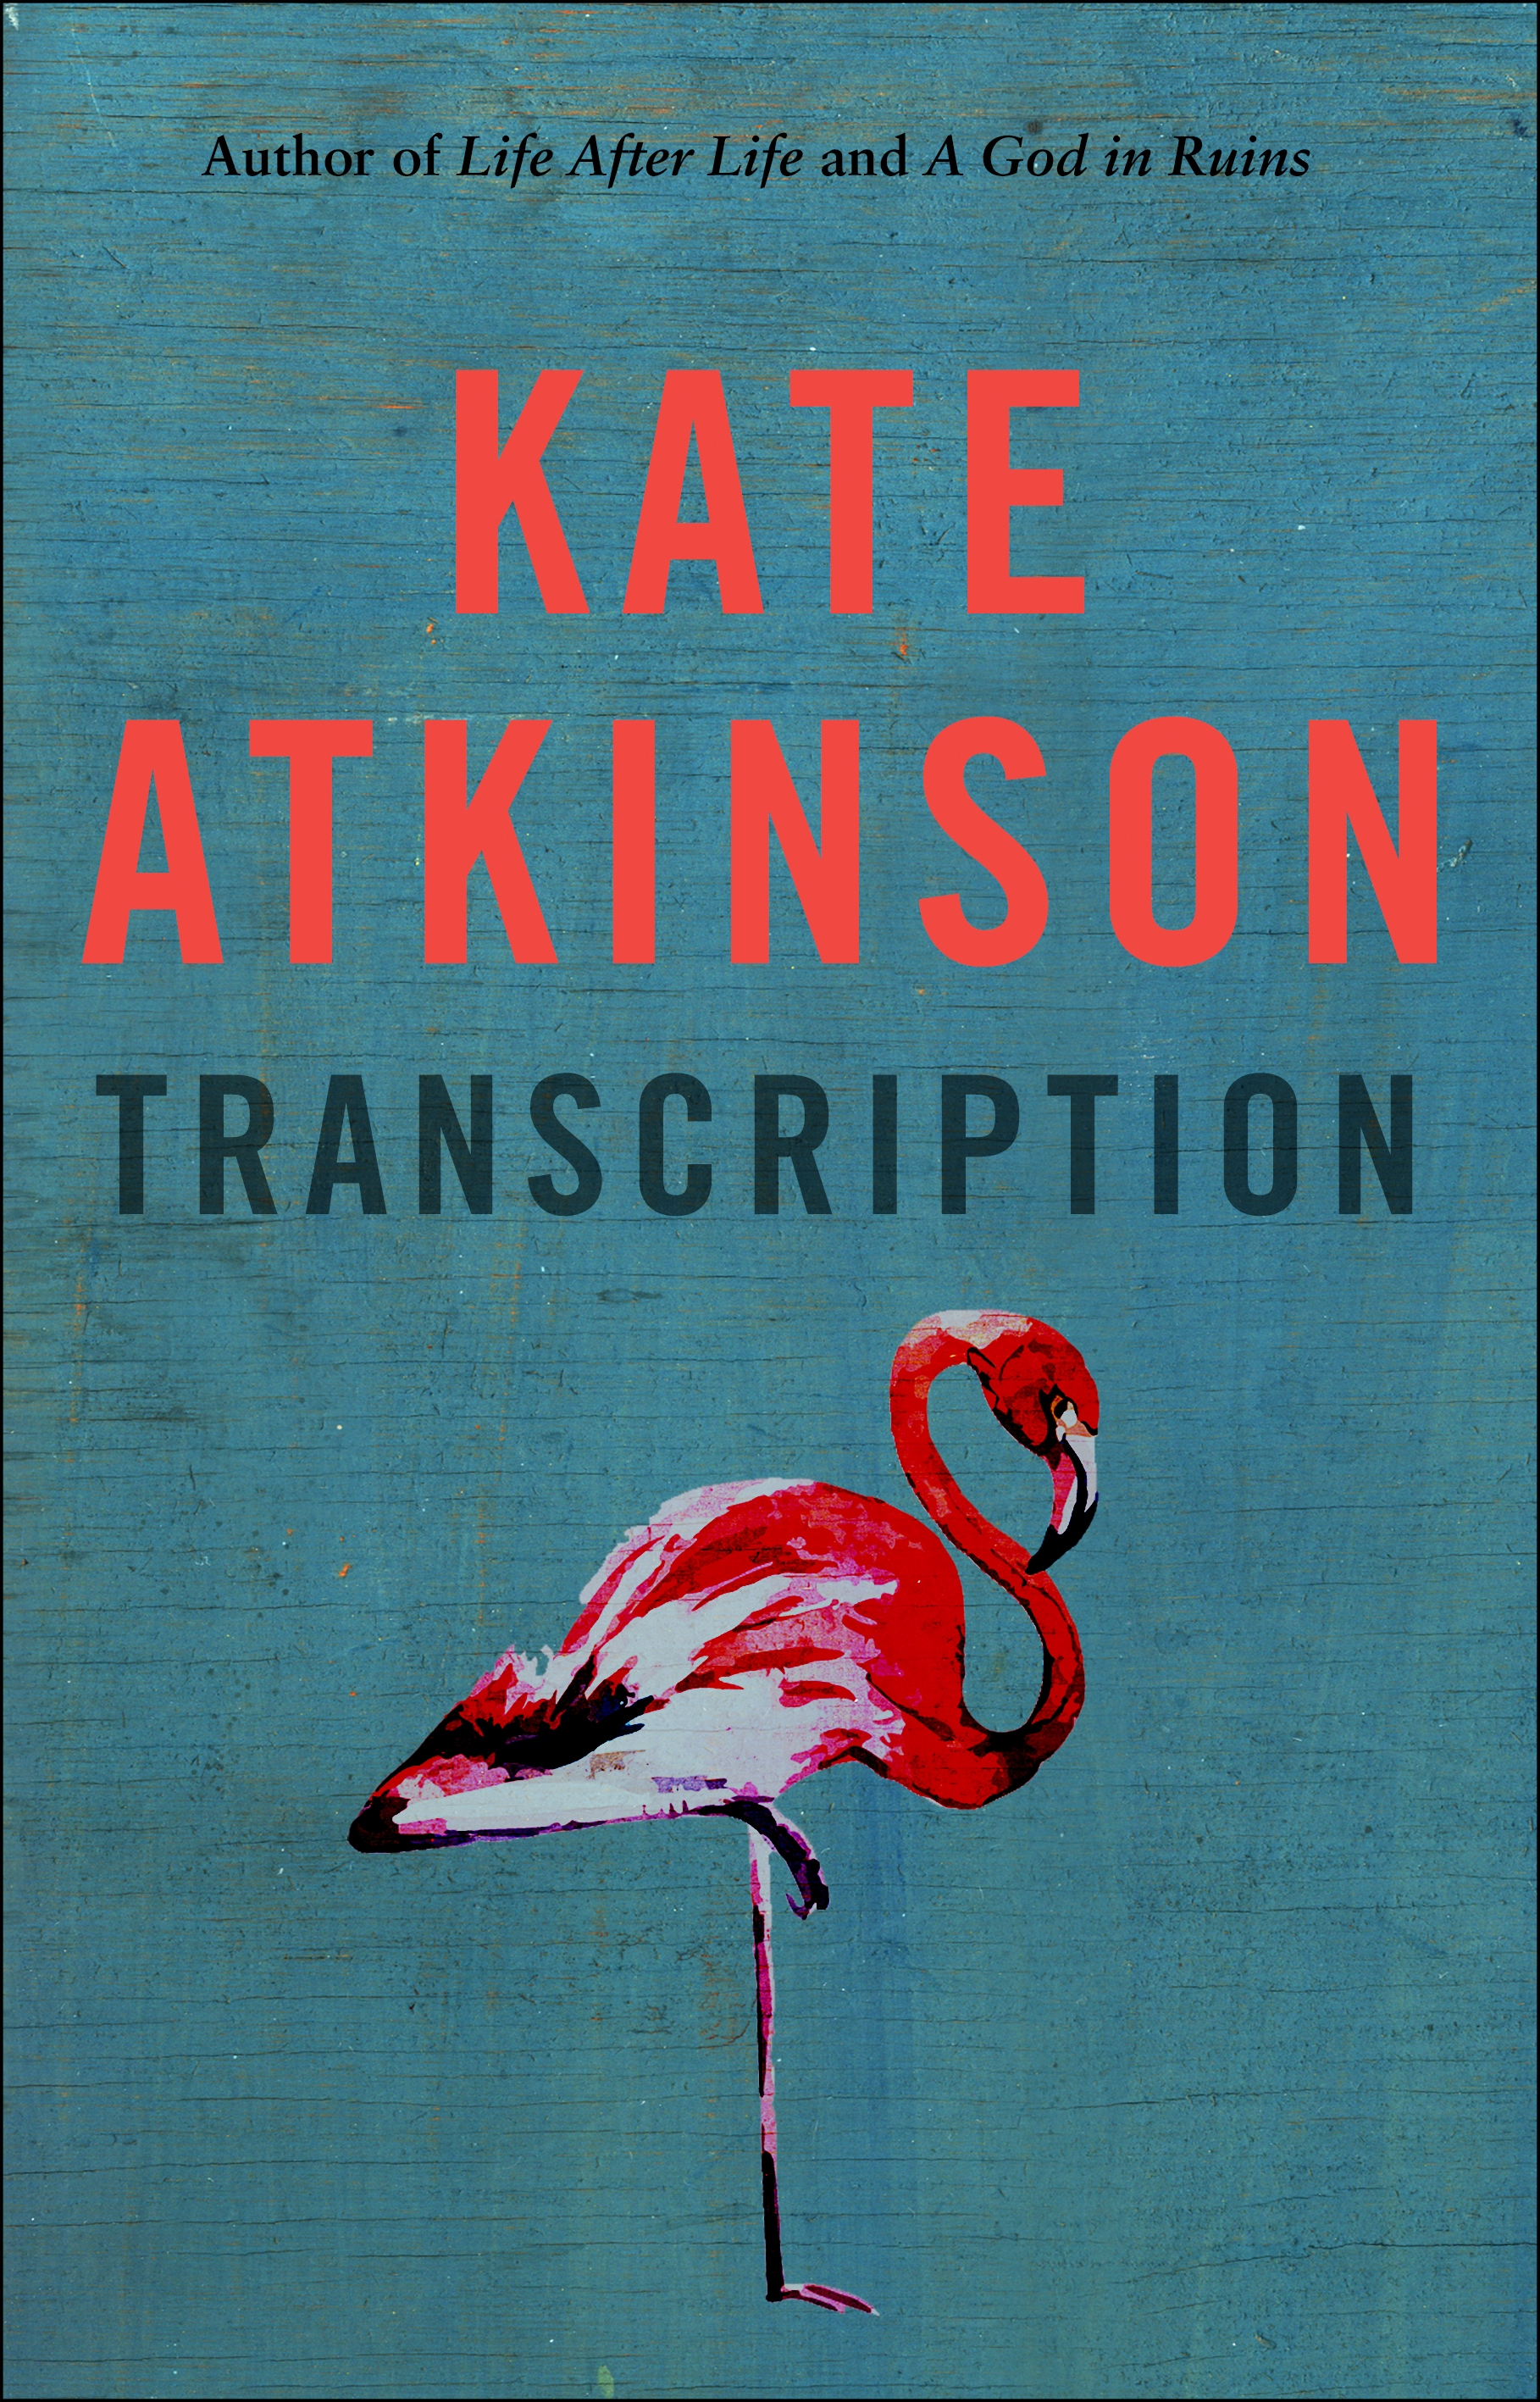 Transcription by Kate Atkinson, ISBN: 9780857525895